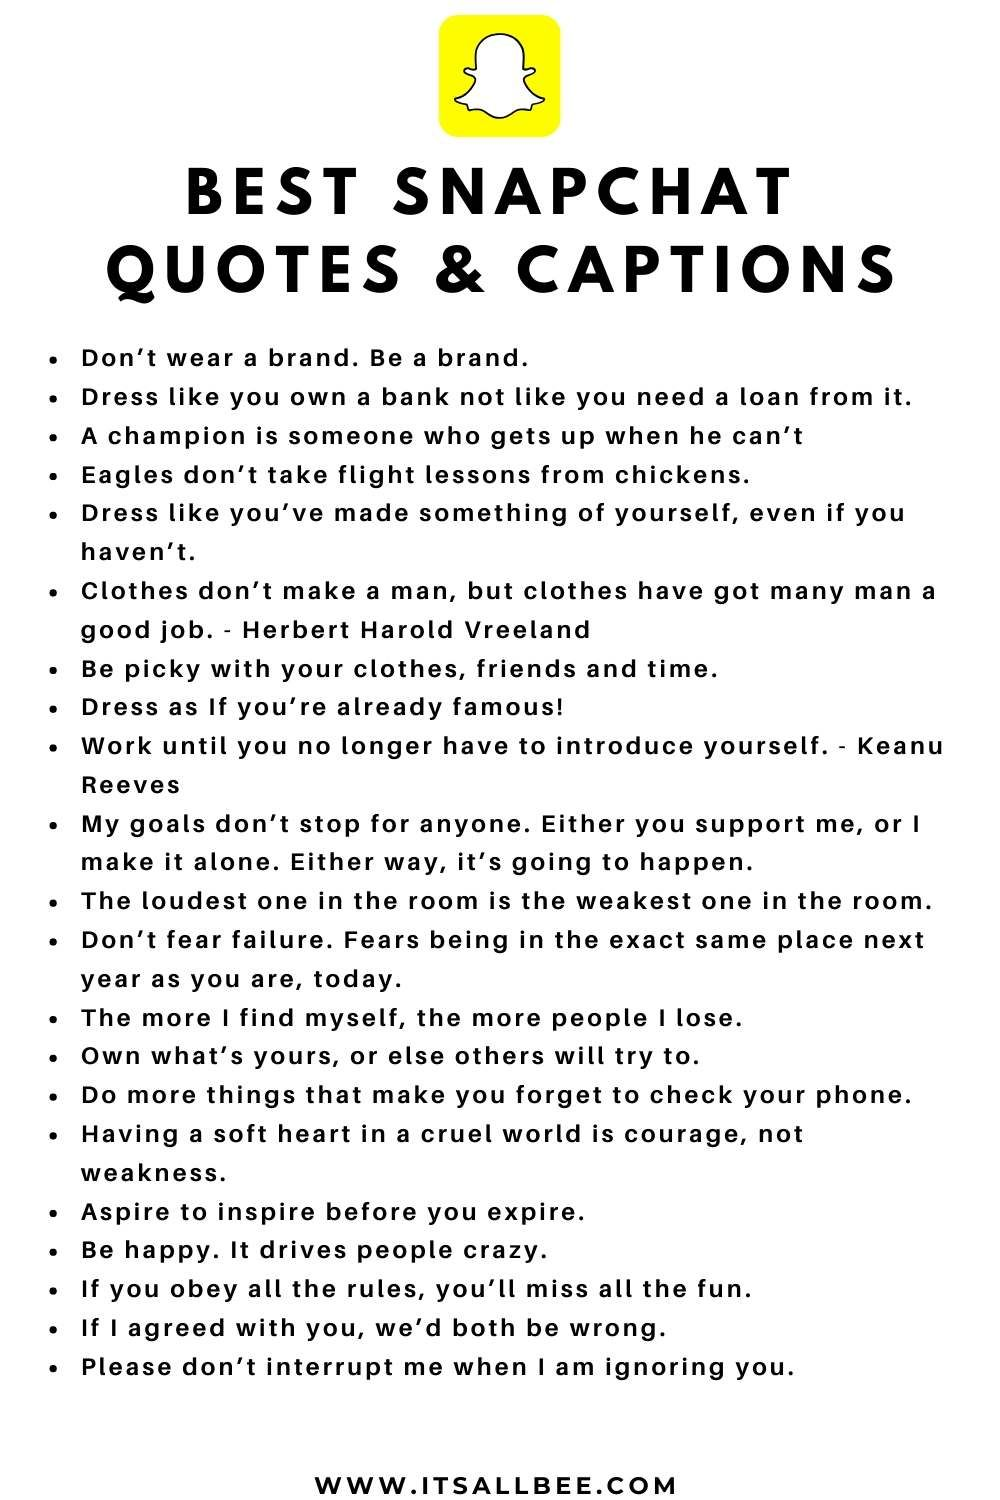 Cool Snapchat Quotes Captions Itsallbee Solo Travel Adventure Tips Snapchat Quotes Short Meaningful Quotes Snap Quotes